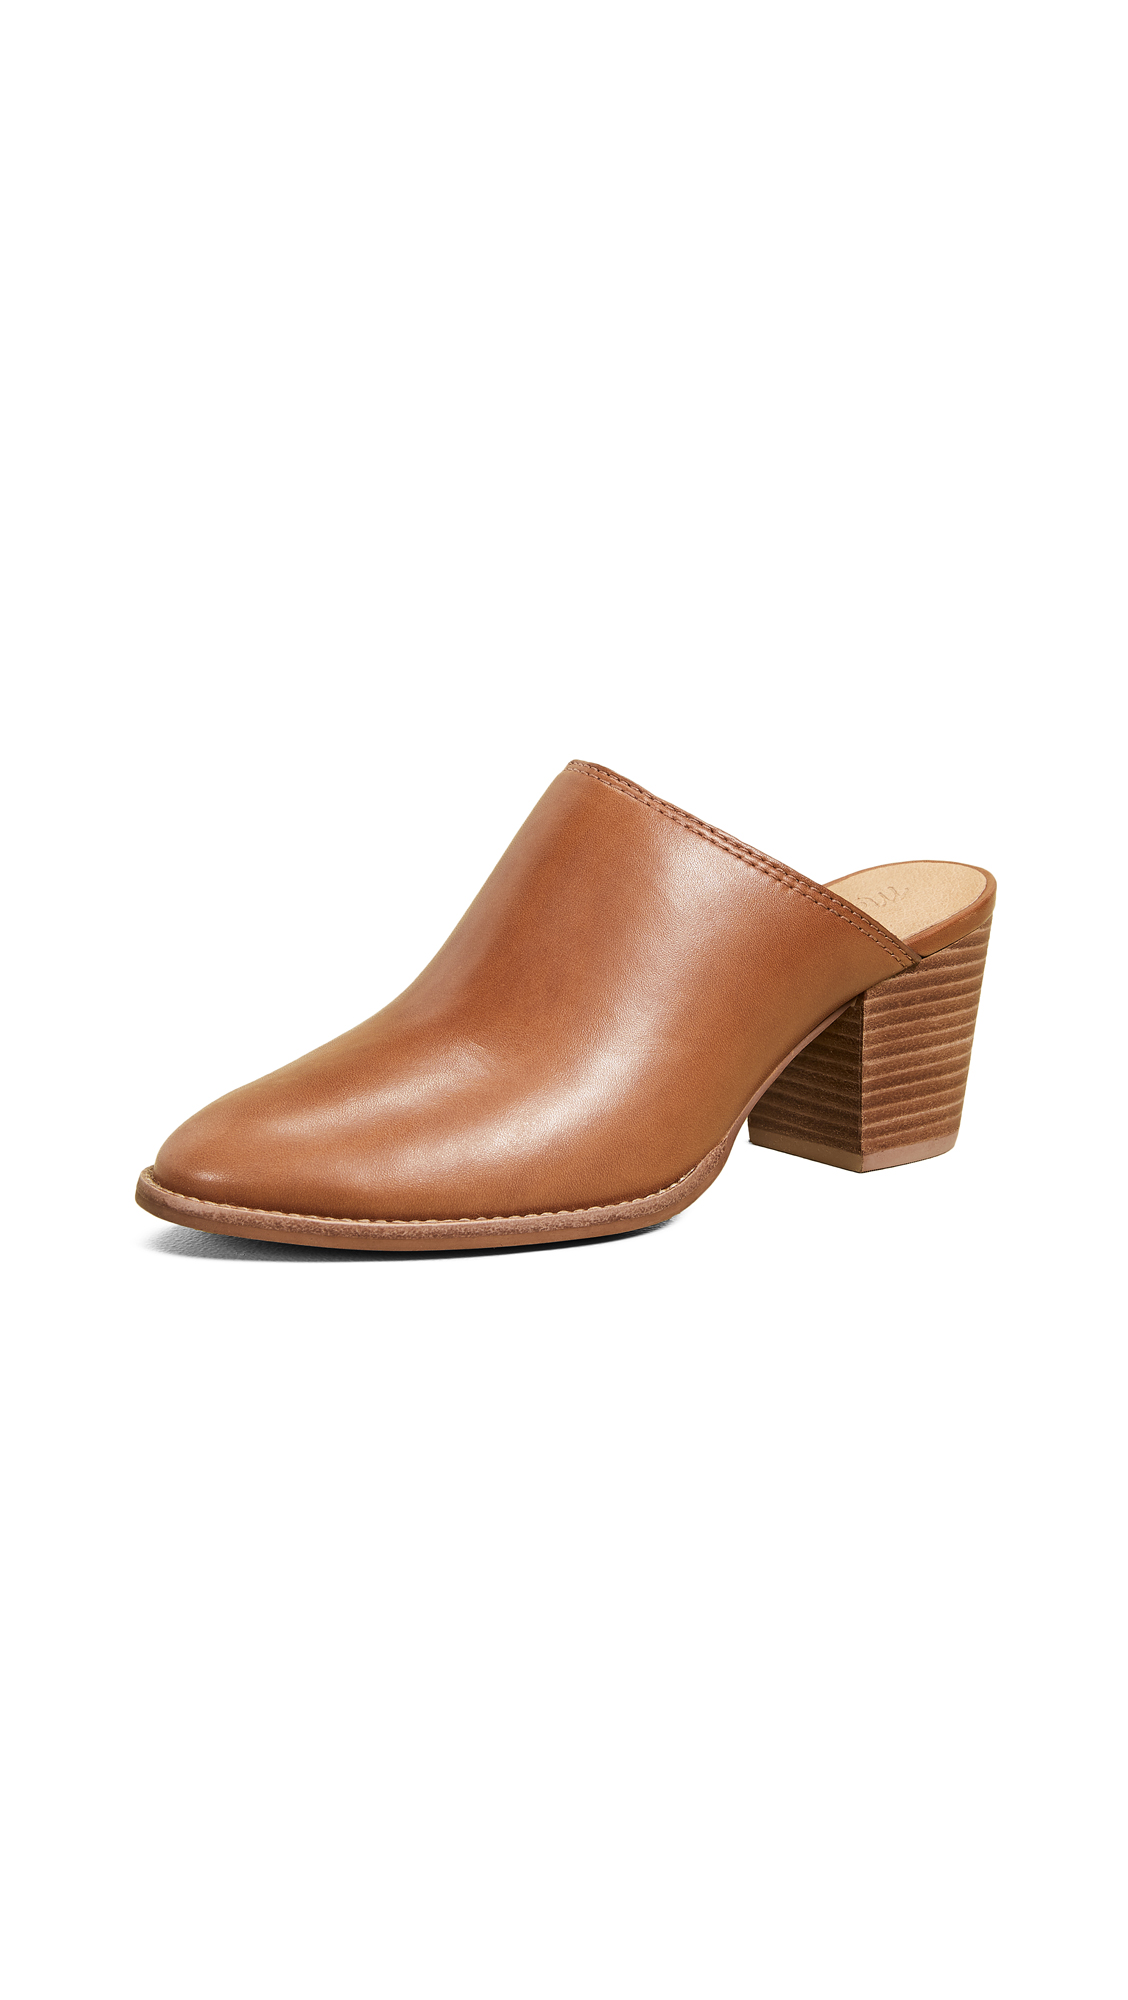 Madewell The Harper Mules - English Saddle